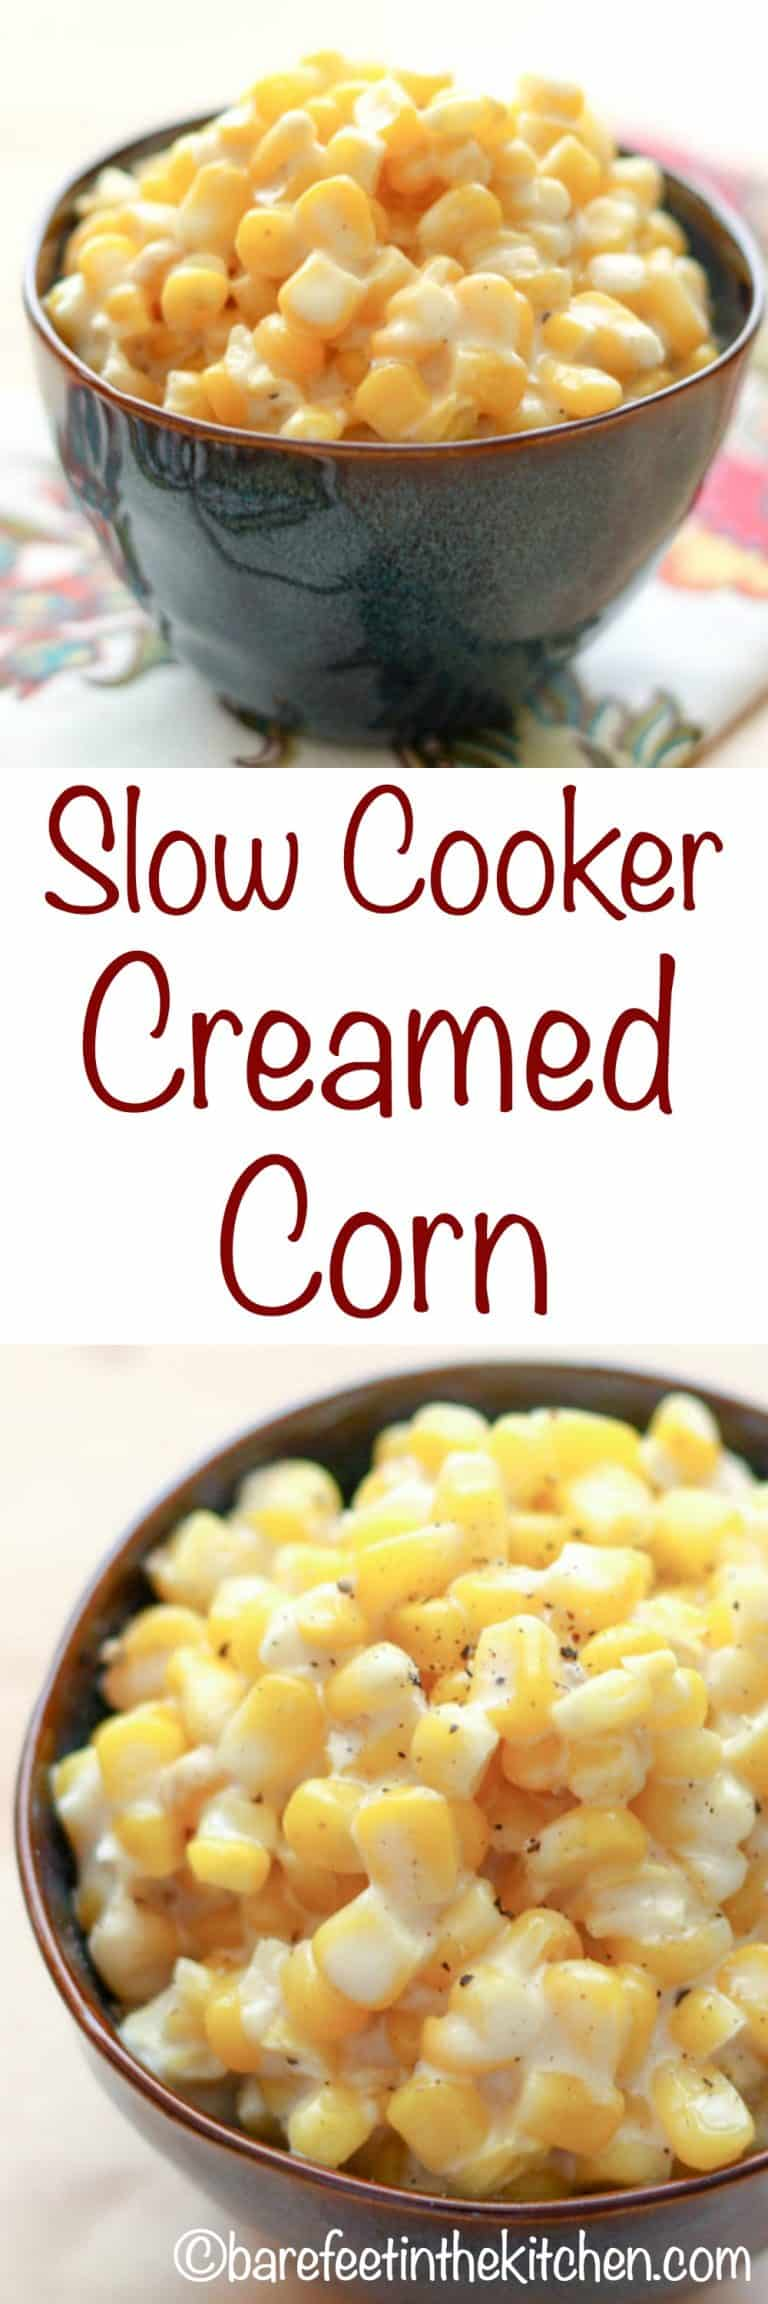 Slow-Cooker Creamed Corn - just like Rudy's BBQ! get the recipe at barefeetinthekitchen.com